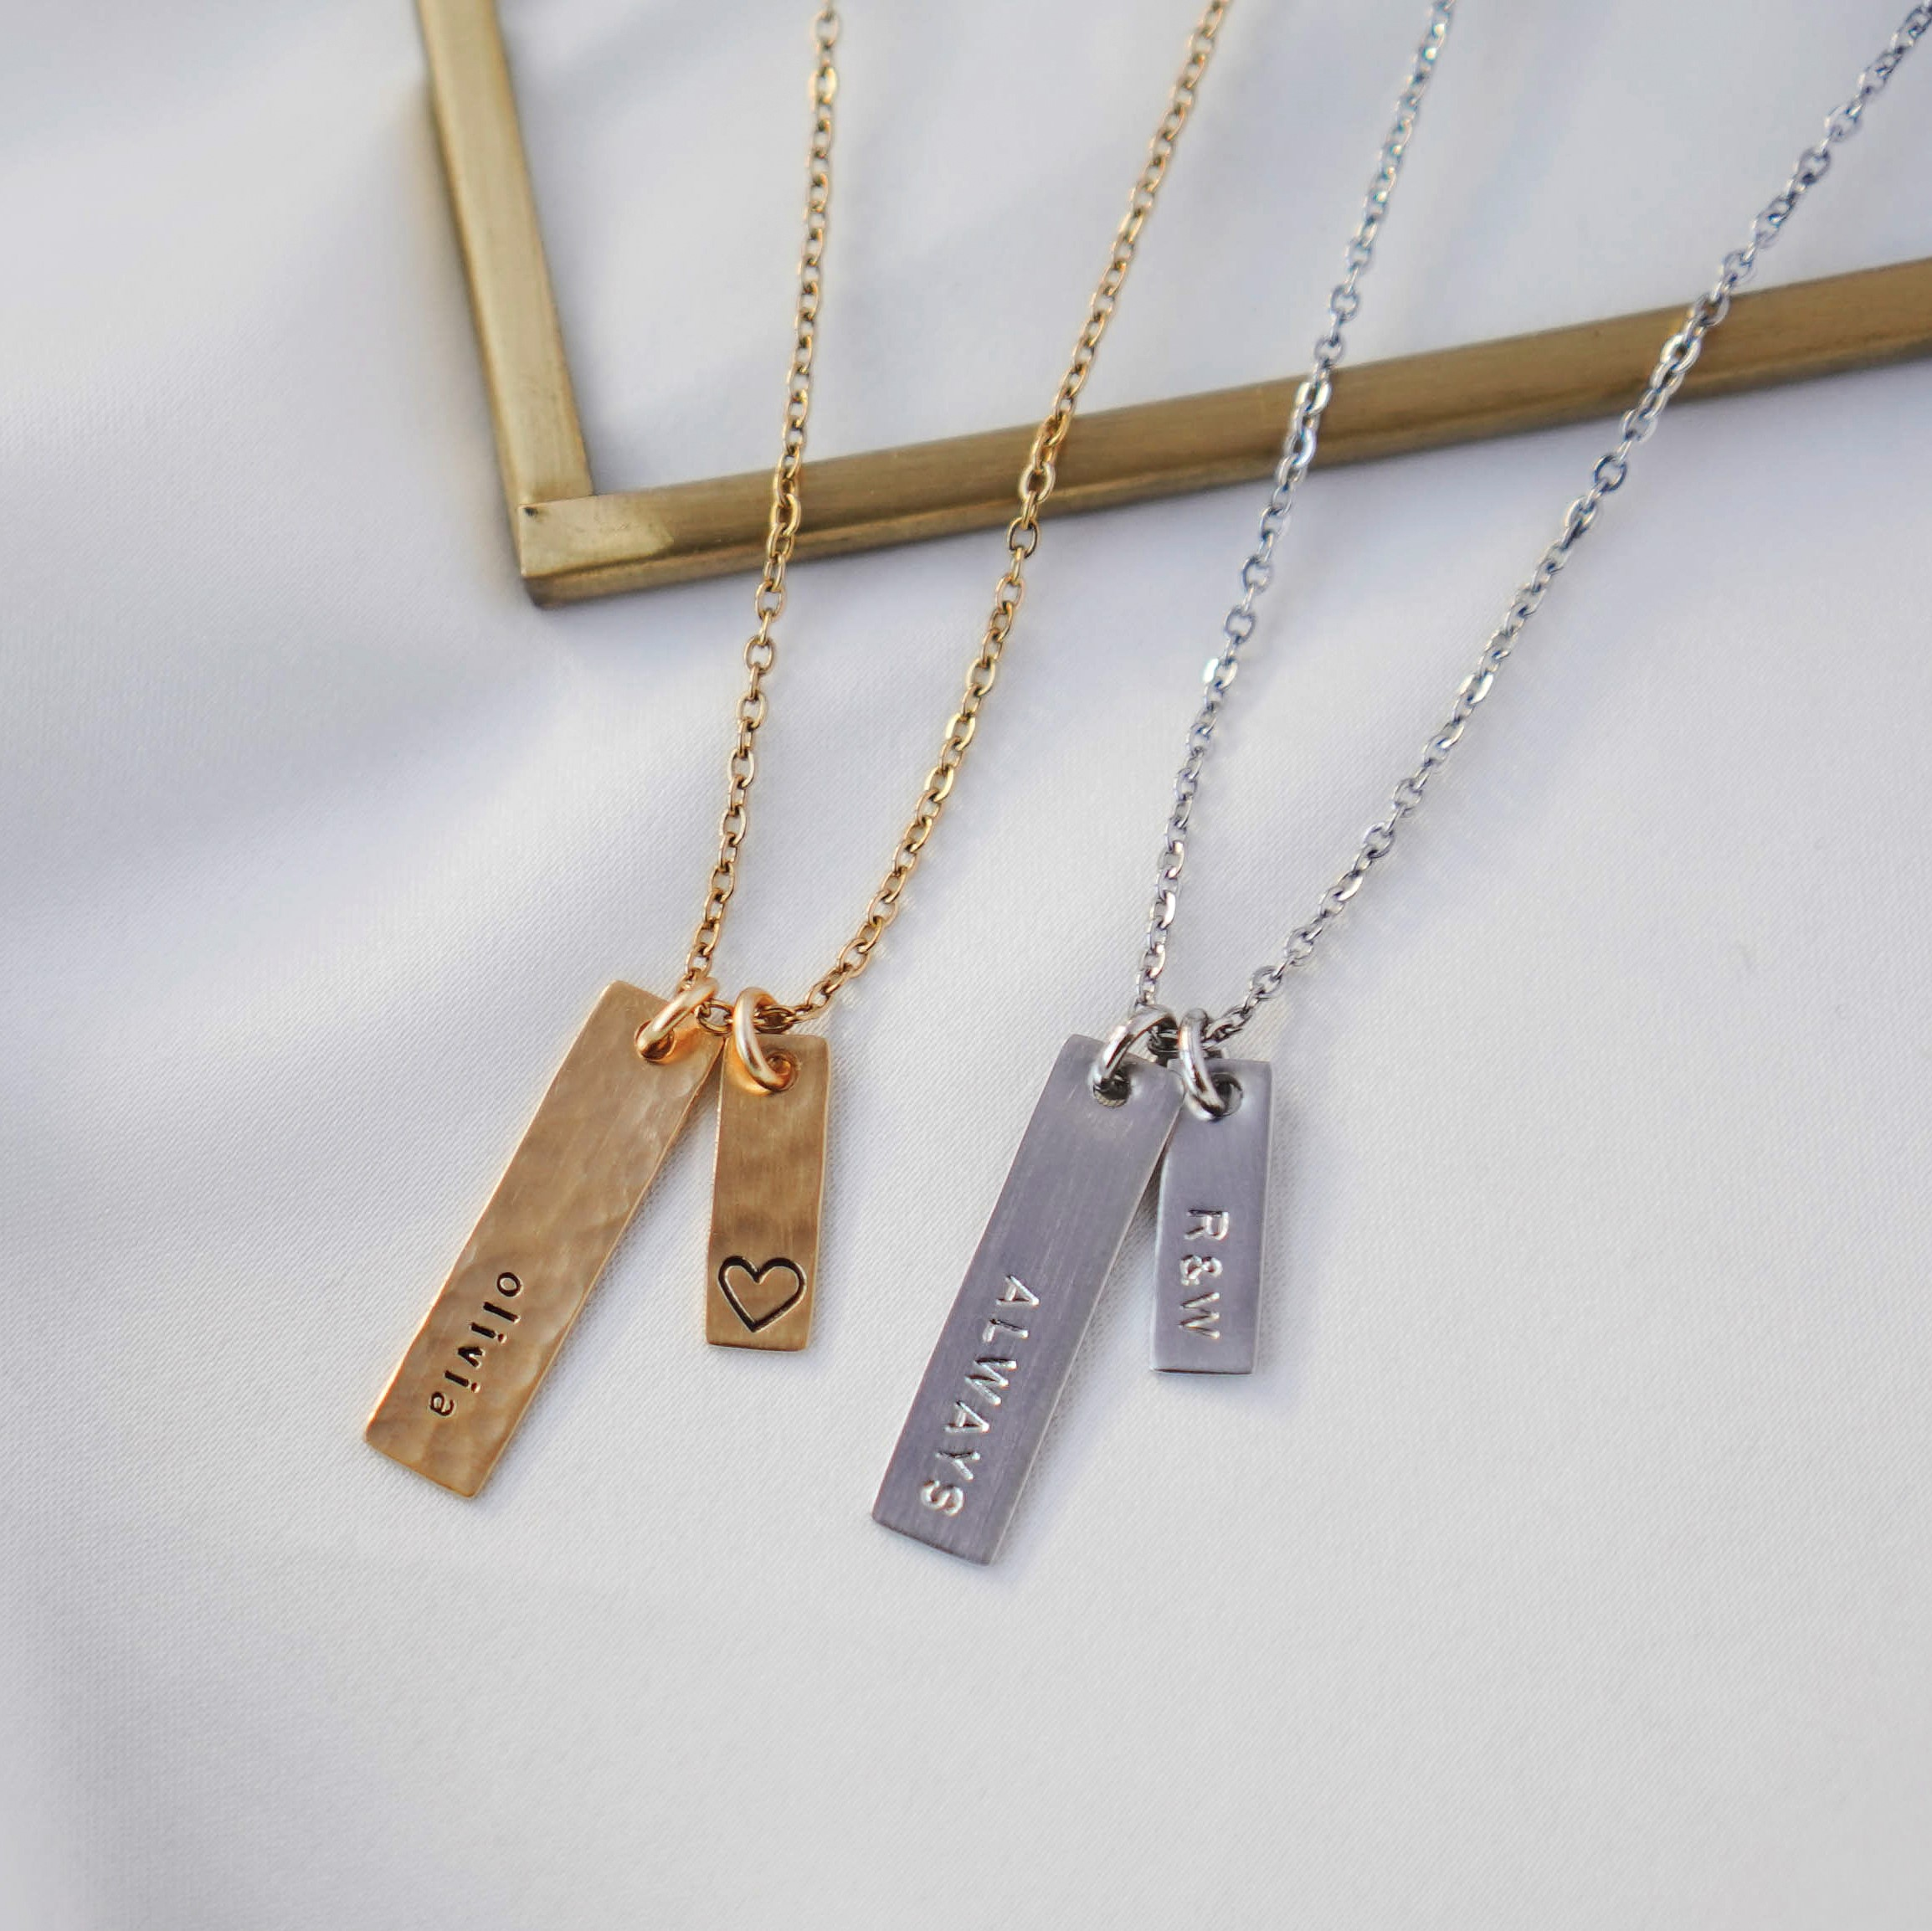 Petit Duo Bar Necklace in Gold and White Gold